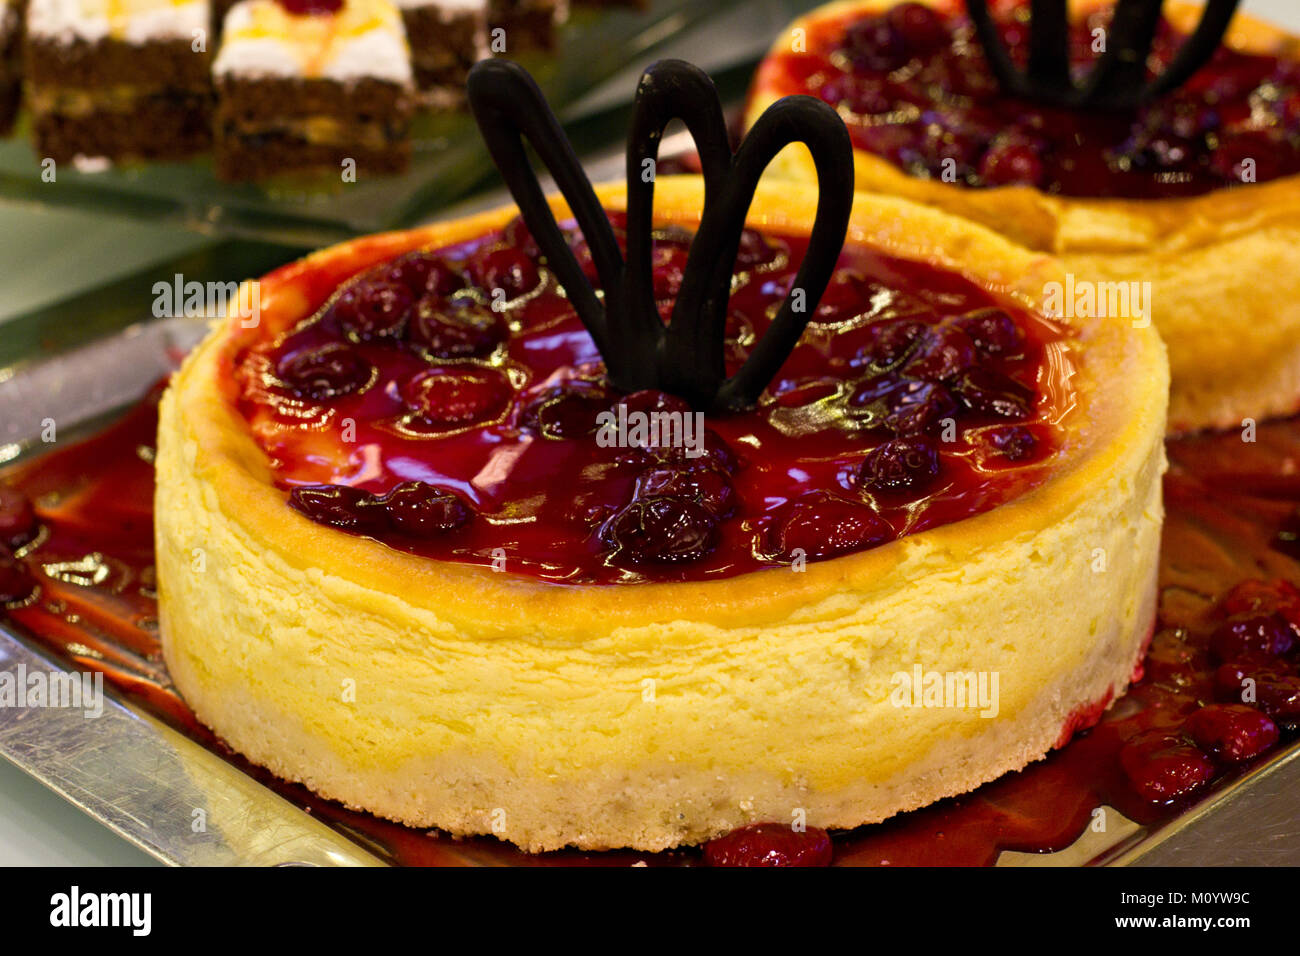 Whole cherry cheesecake with the burgundy jelly and black chocolate - Stock Image